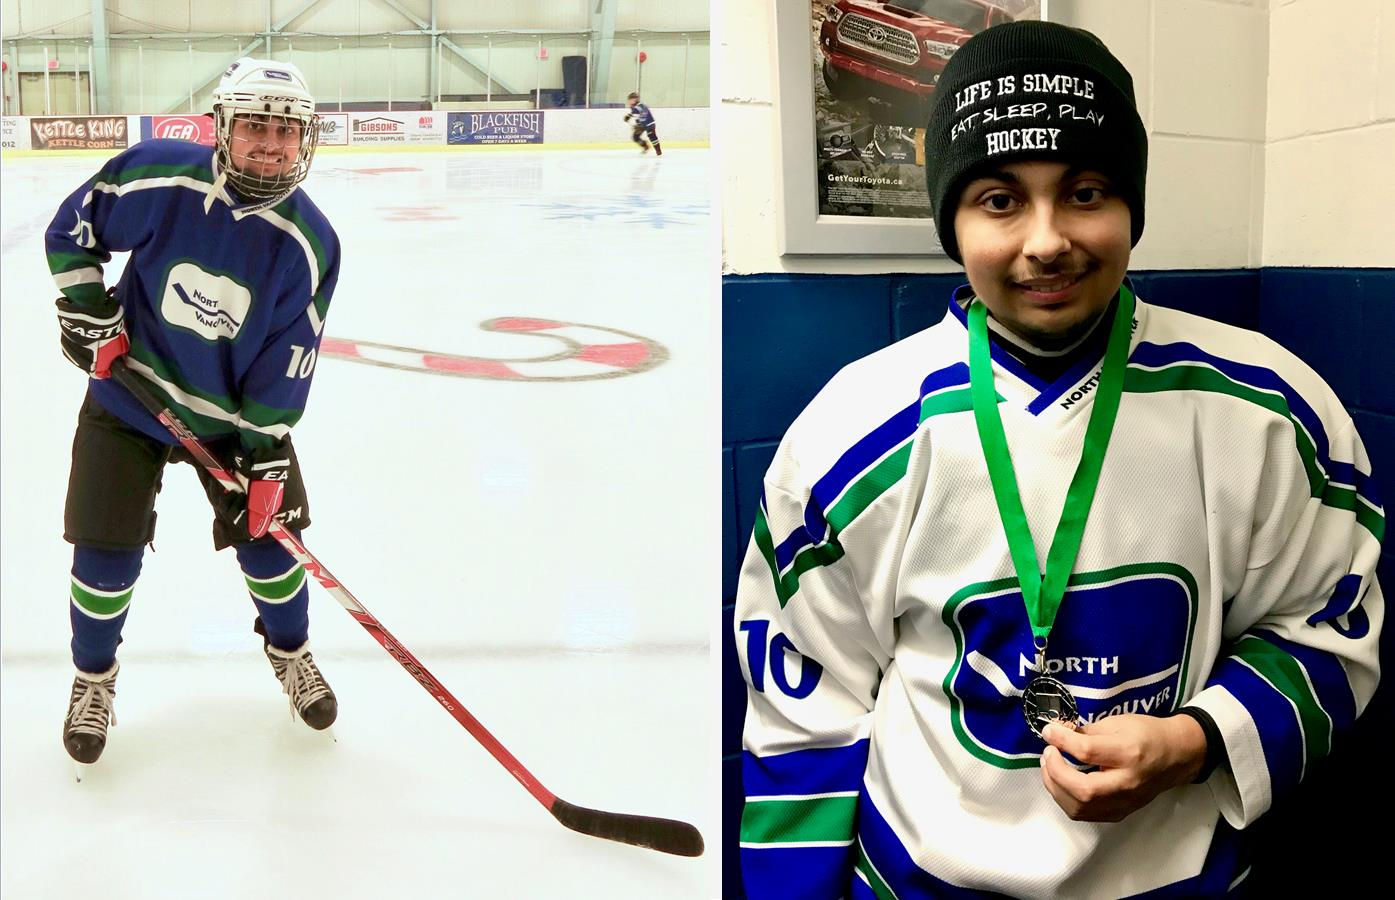 Two photos of a male youth hockey player on the ice (left) and off the ice holding a medal.